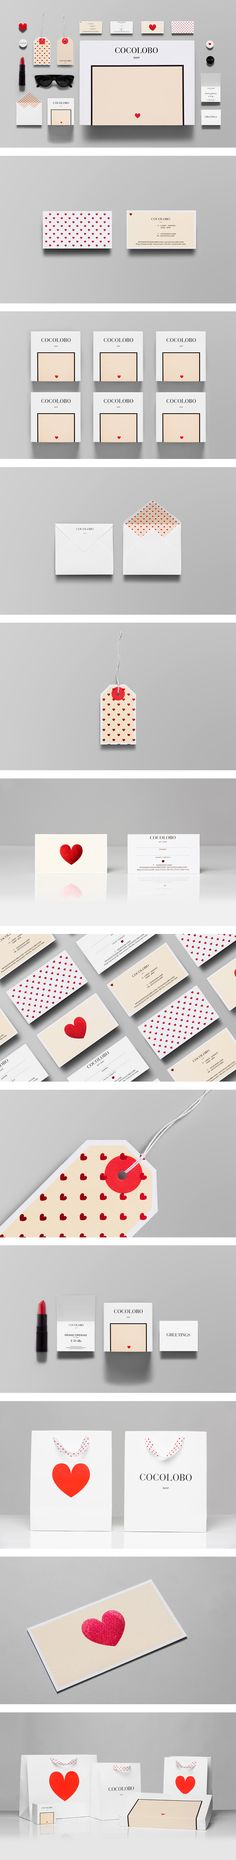 So cute and simple. <3 Cocolobo - Branding / http://www.anagrama.com